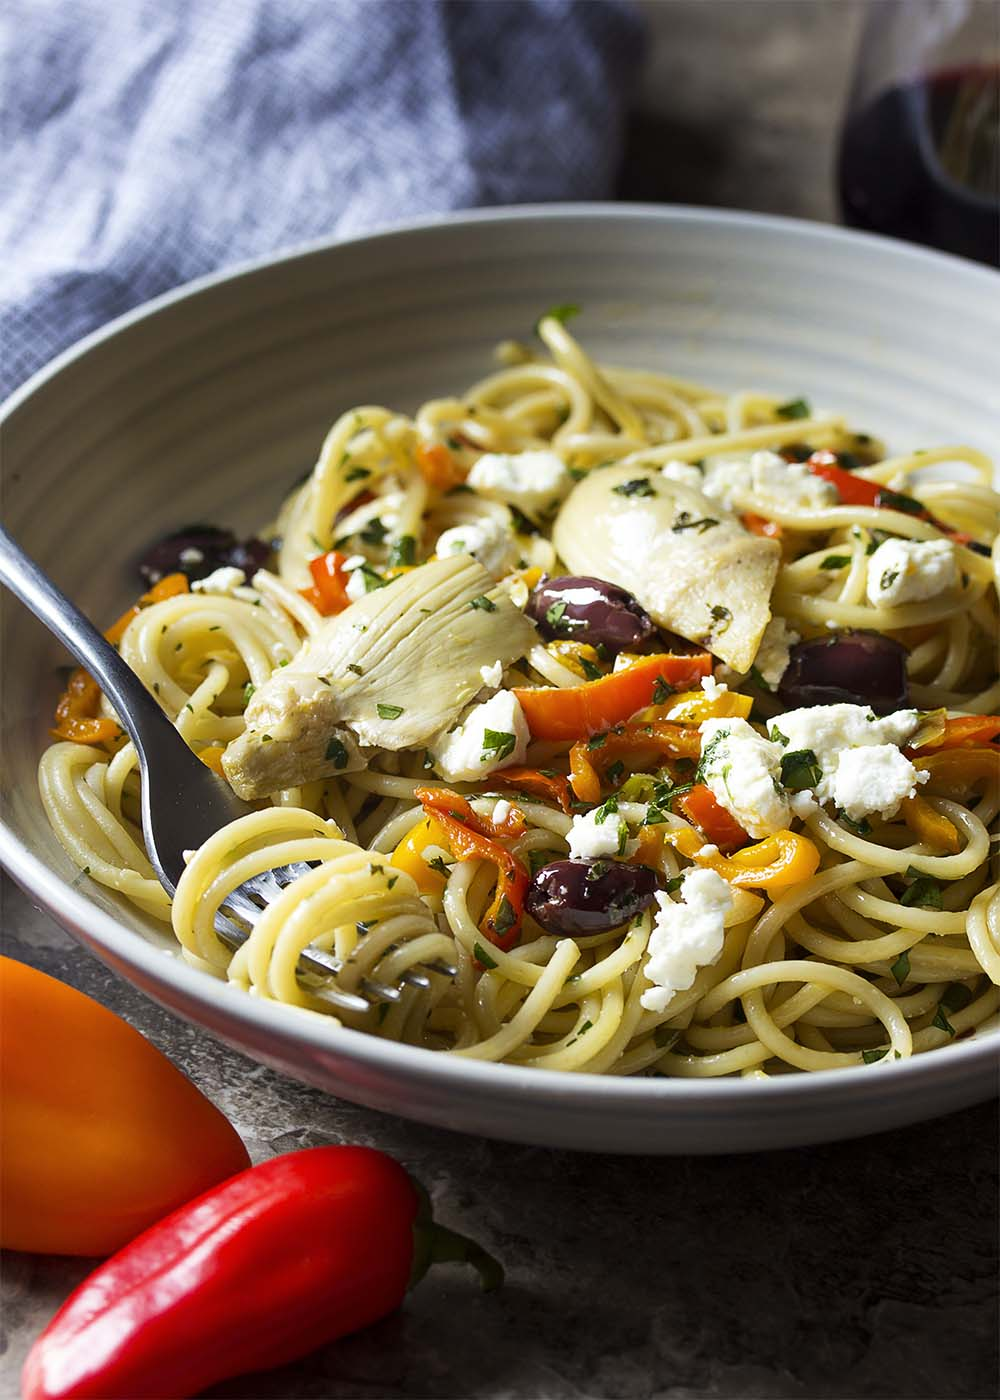 A bowl of vegetarian Mediterrean pasta with artichokes, bell peppers, black olives, and feta.